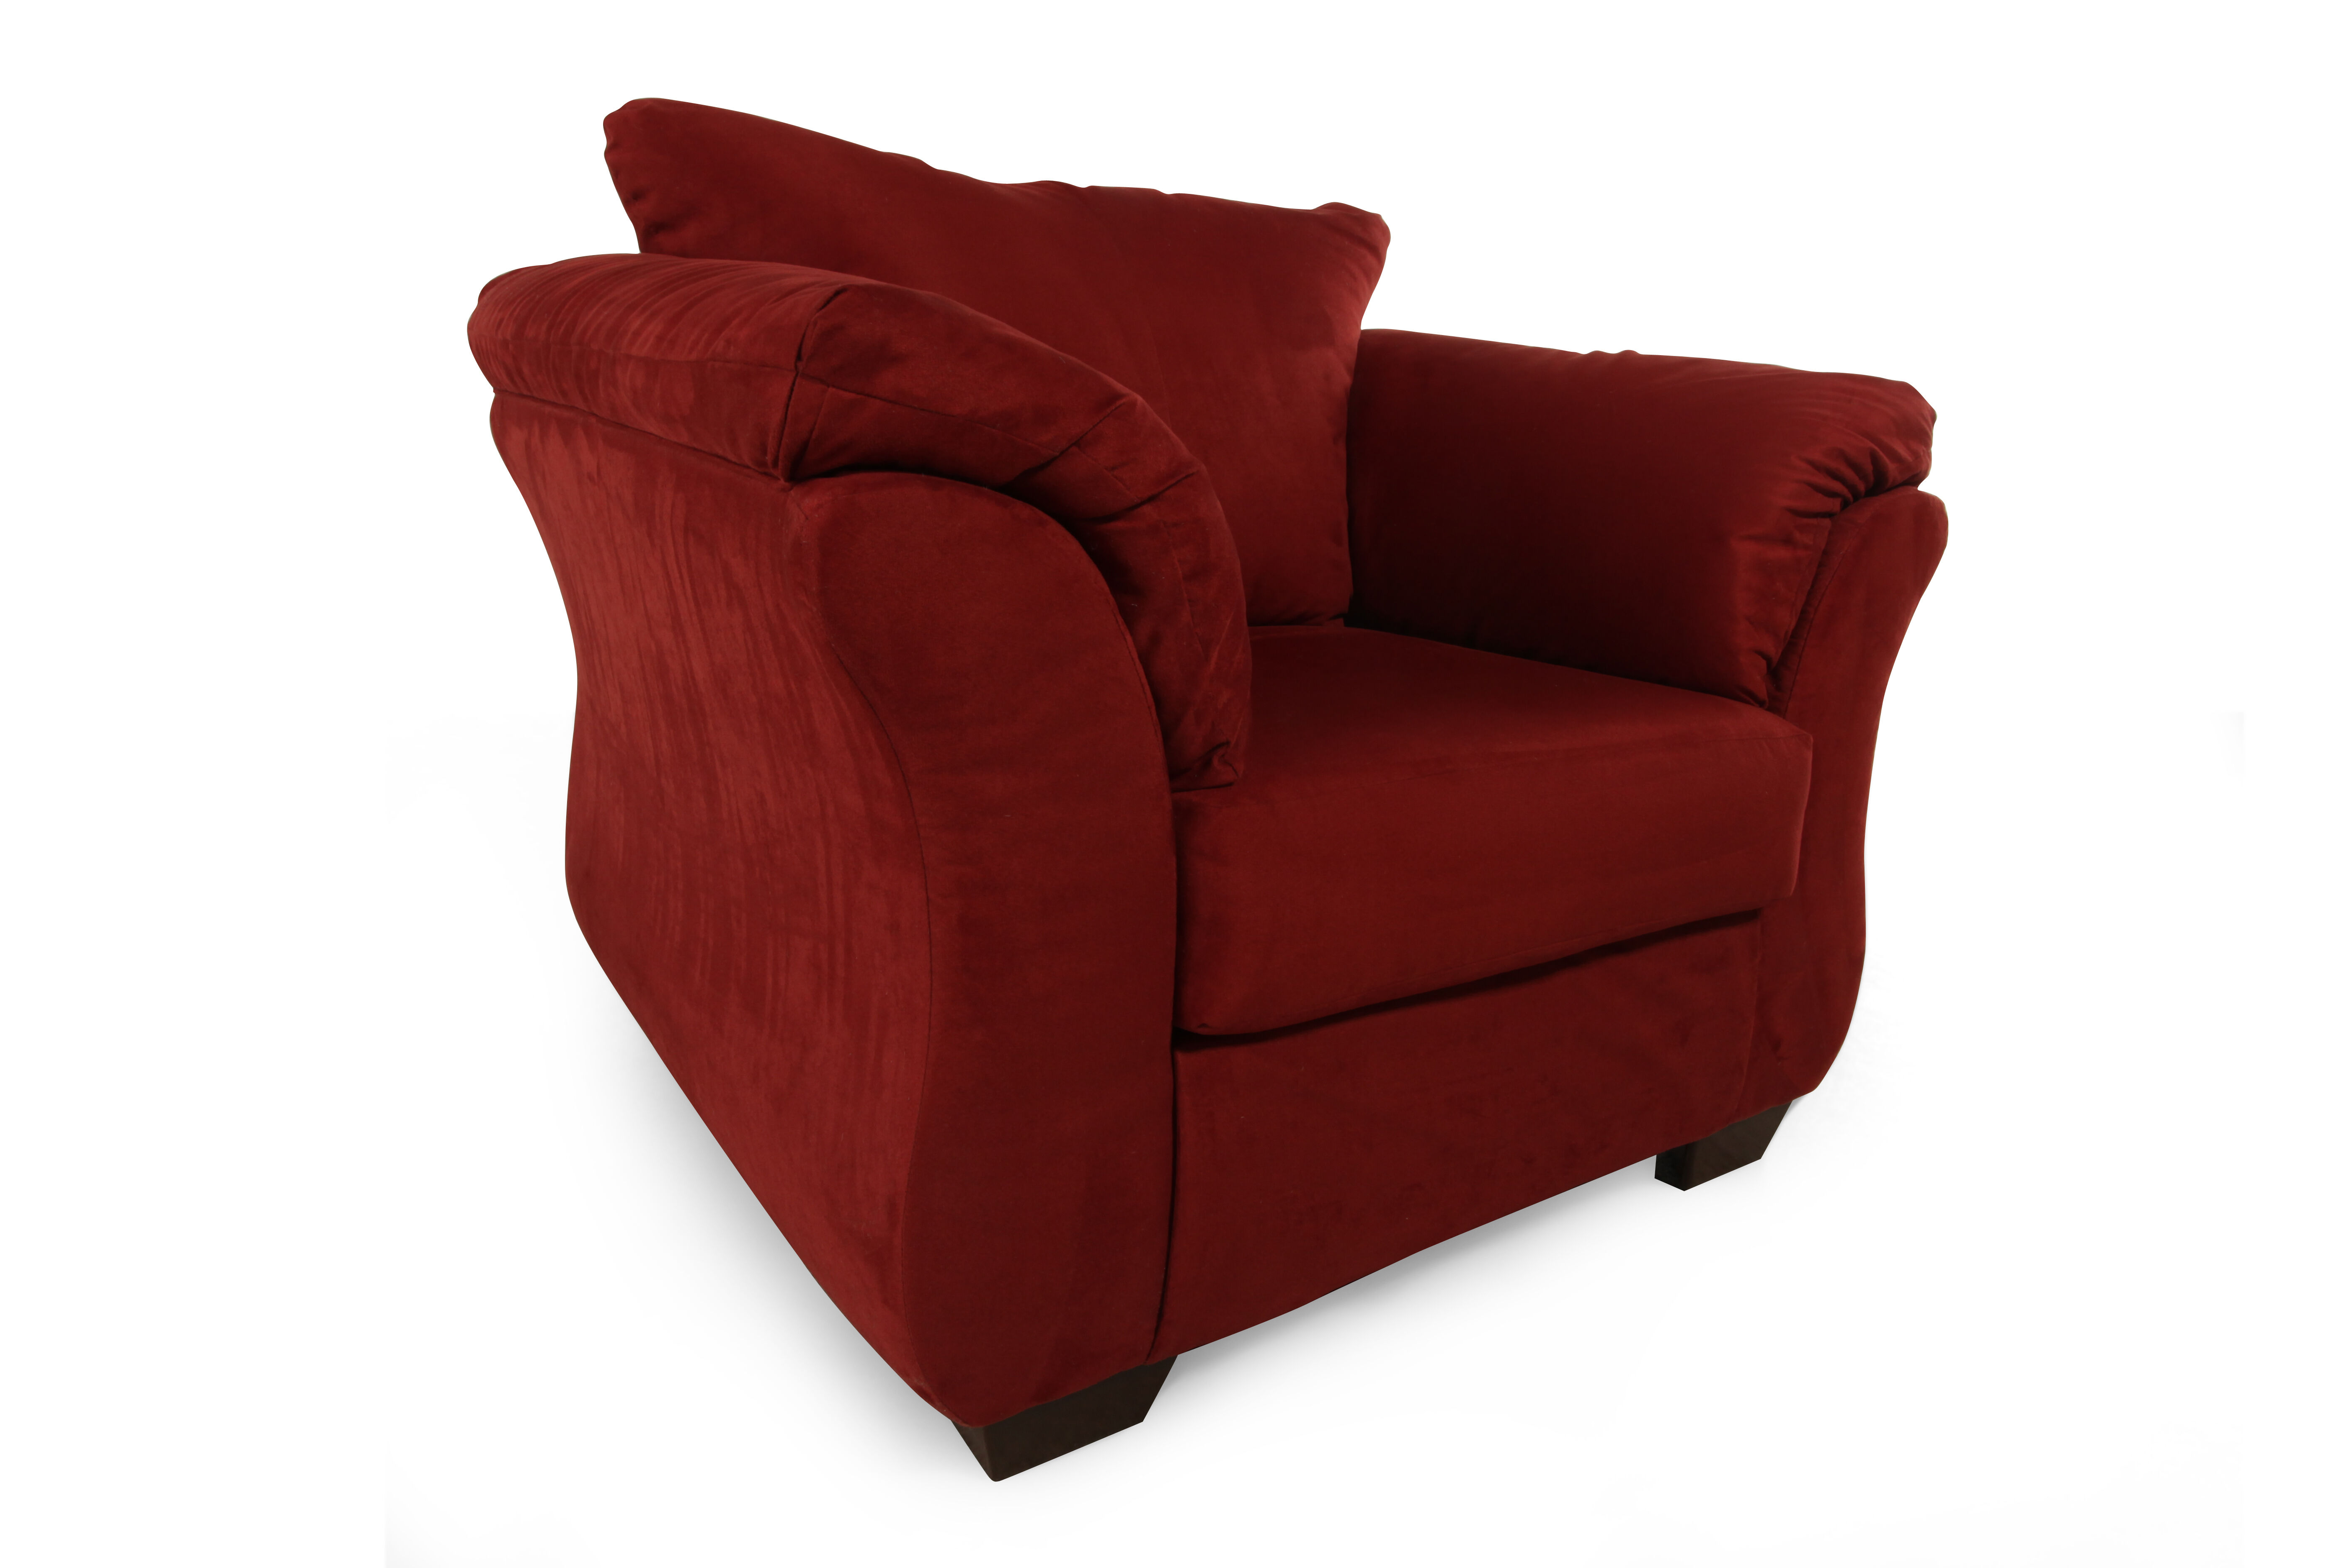 LowProfile Contemporary 46 Chair in Red  Mathis